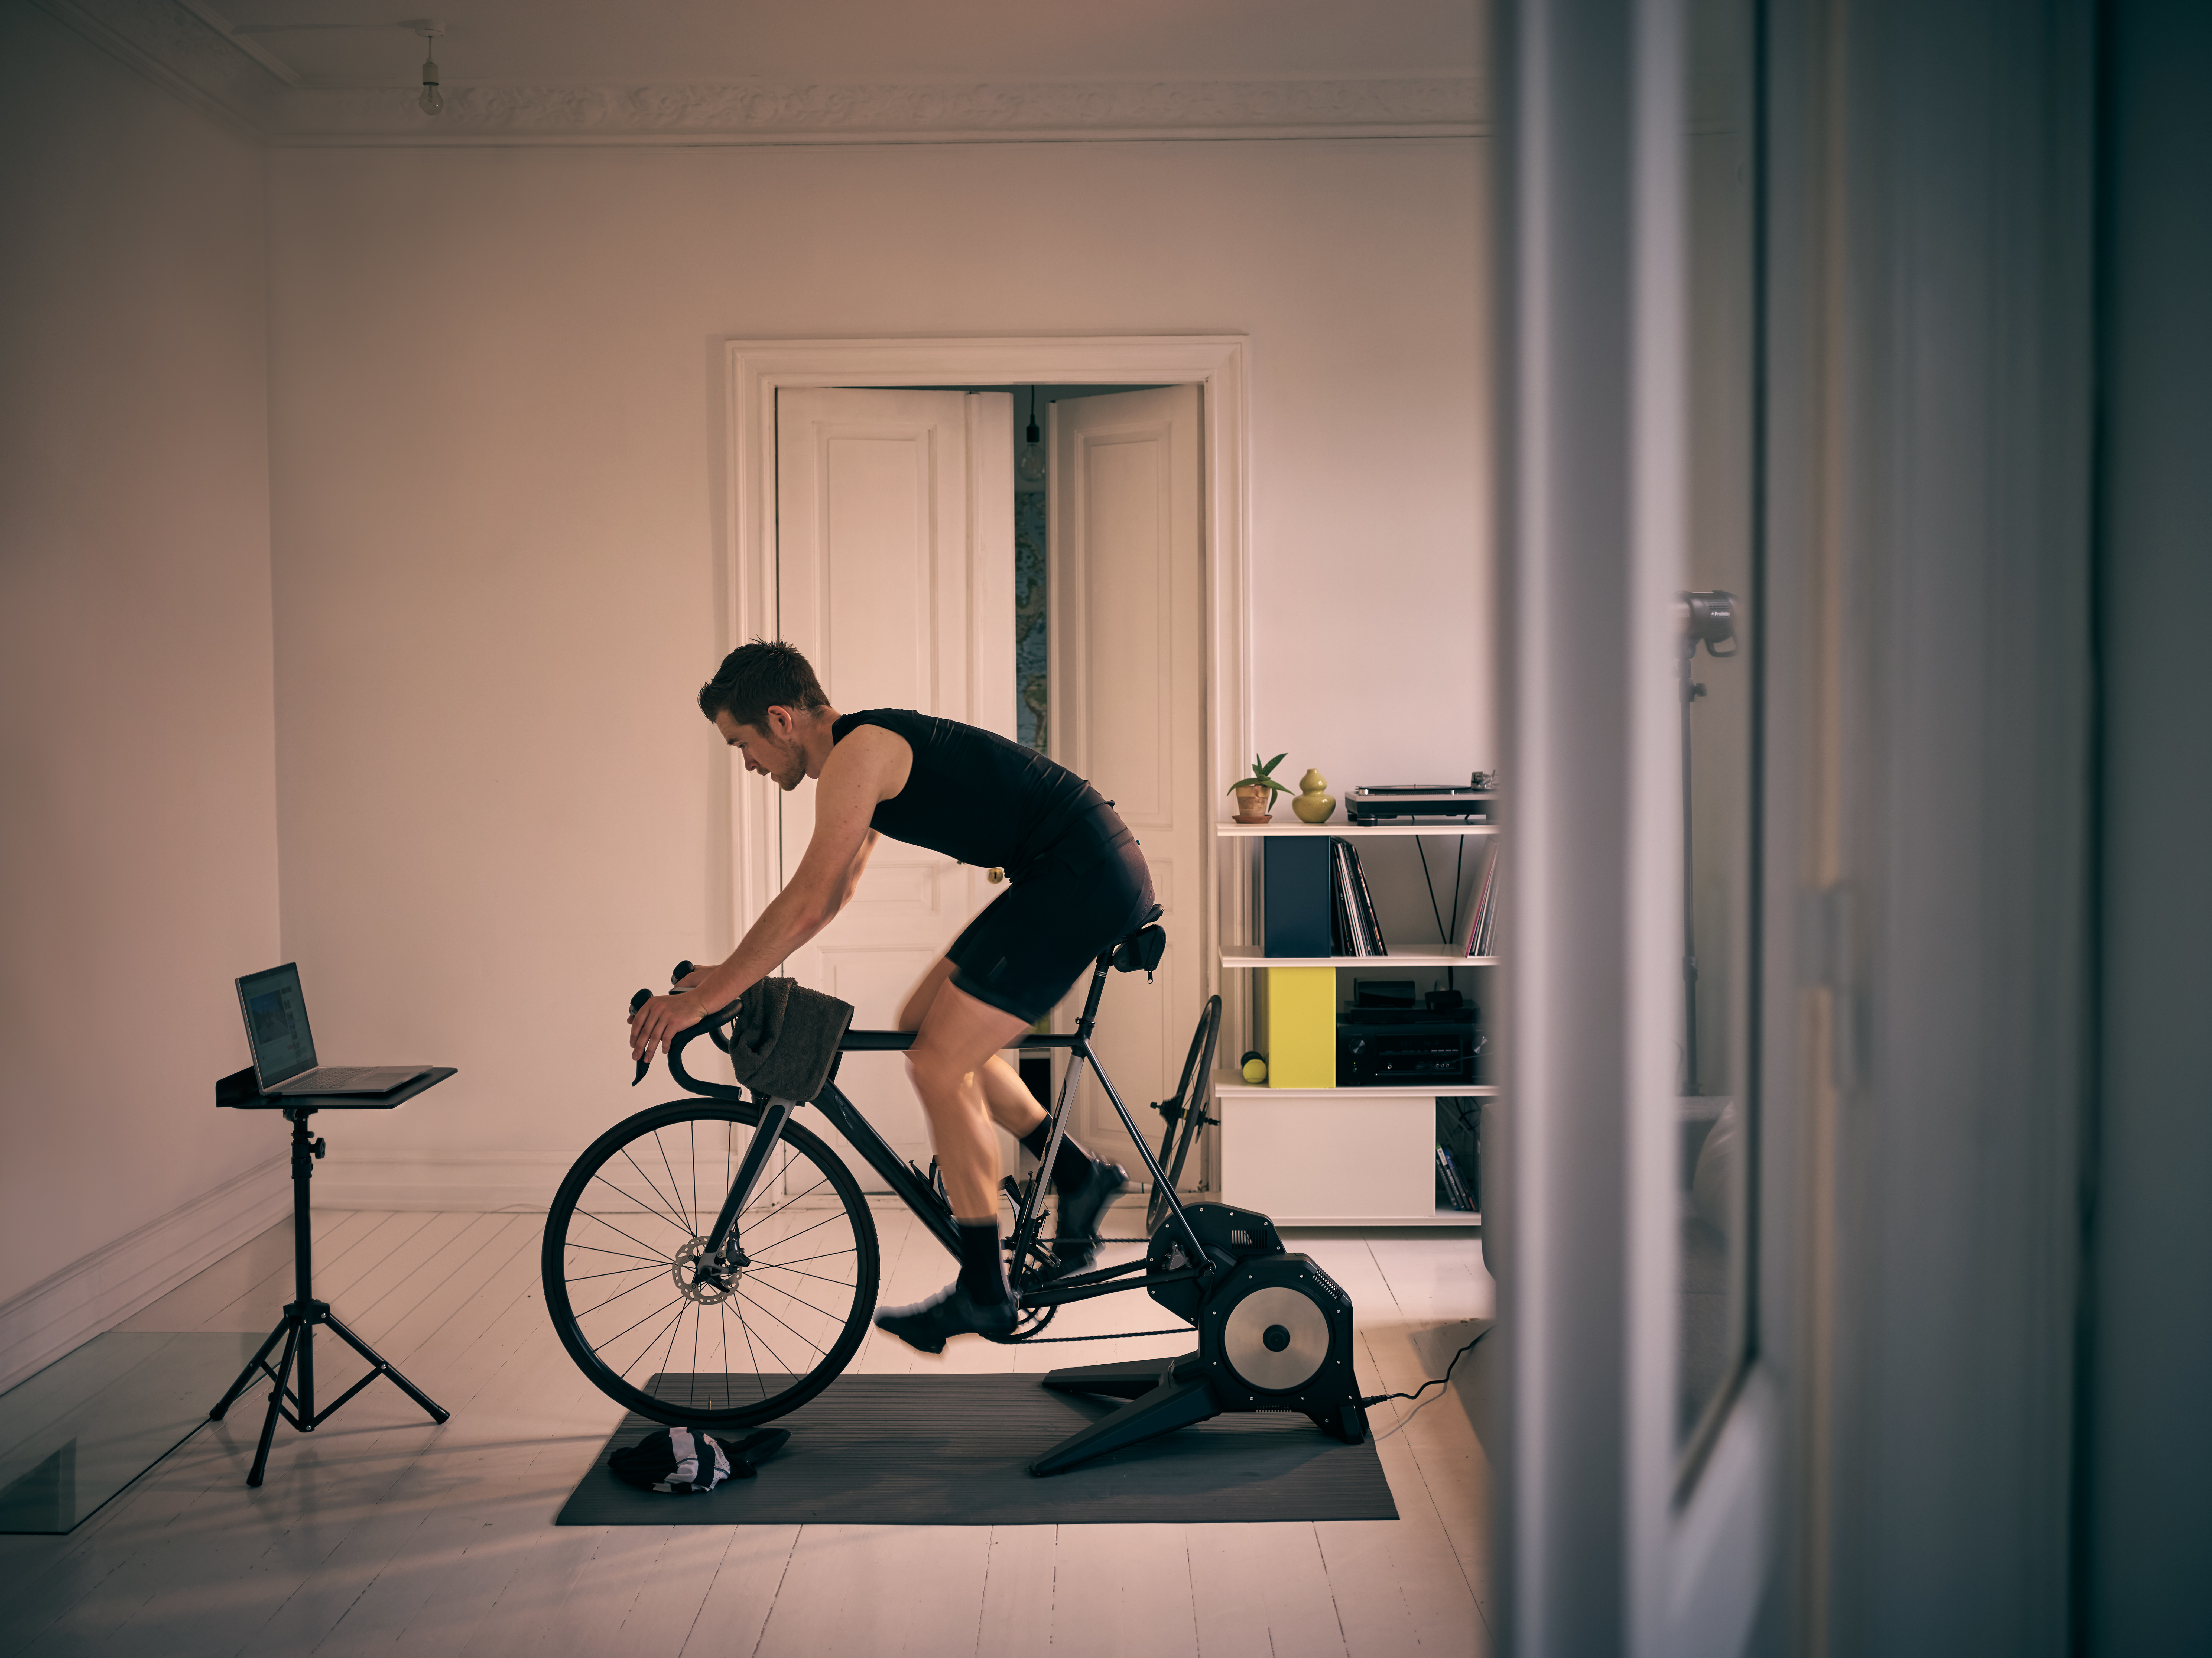 Shot of a young man working out on an exercise bike at home